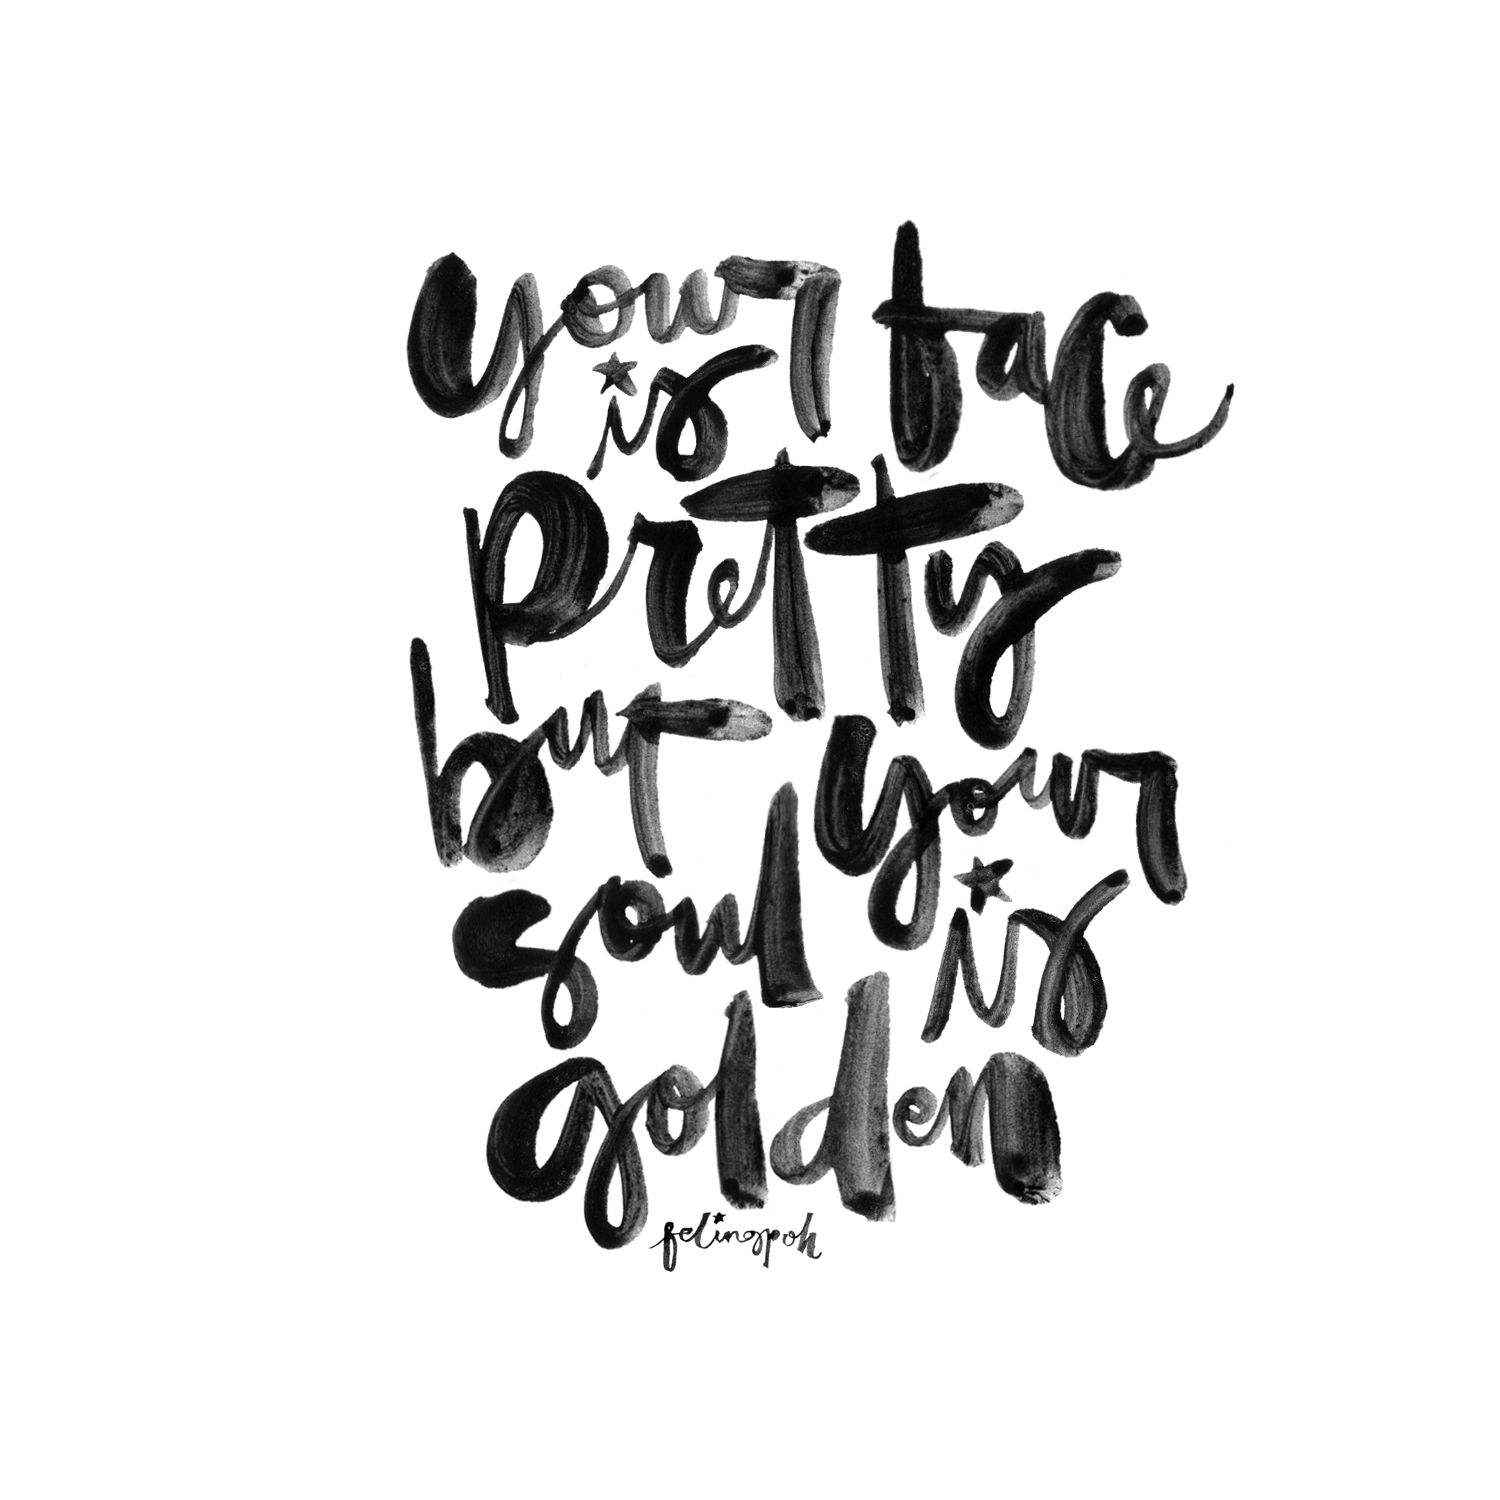 Calligraphy lettering quotes instagram felingpoh